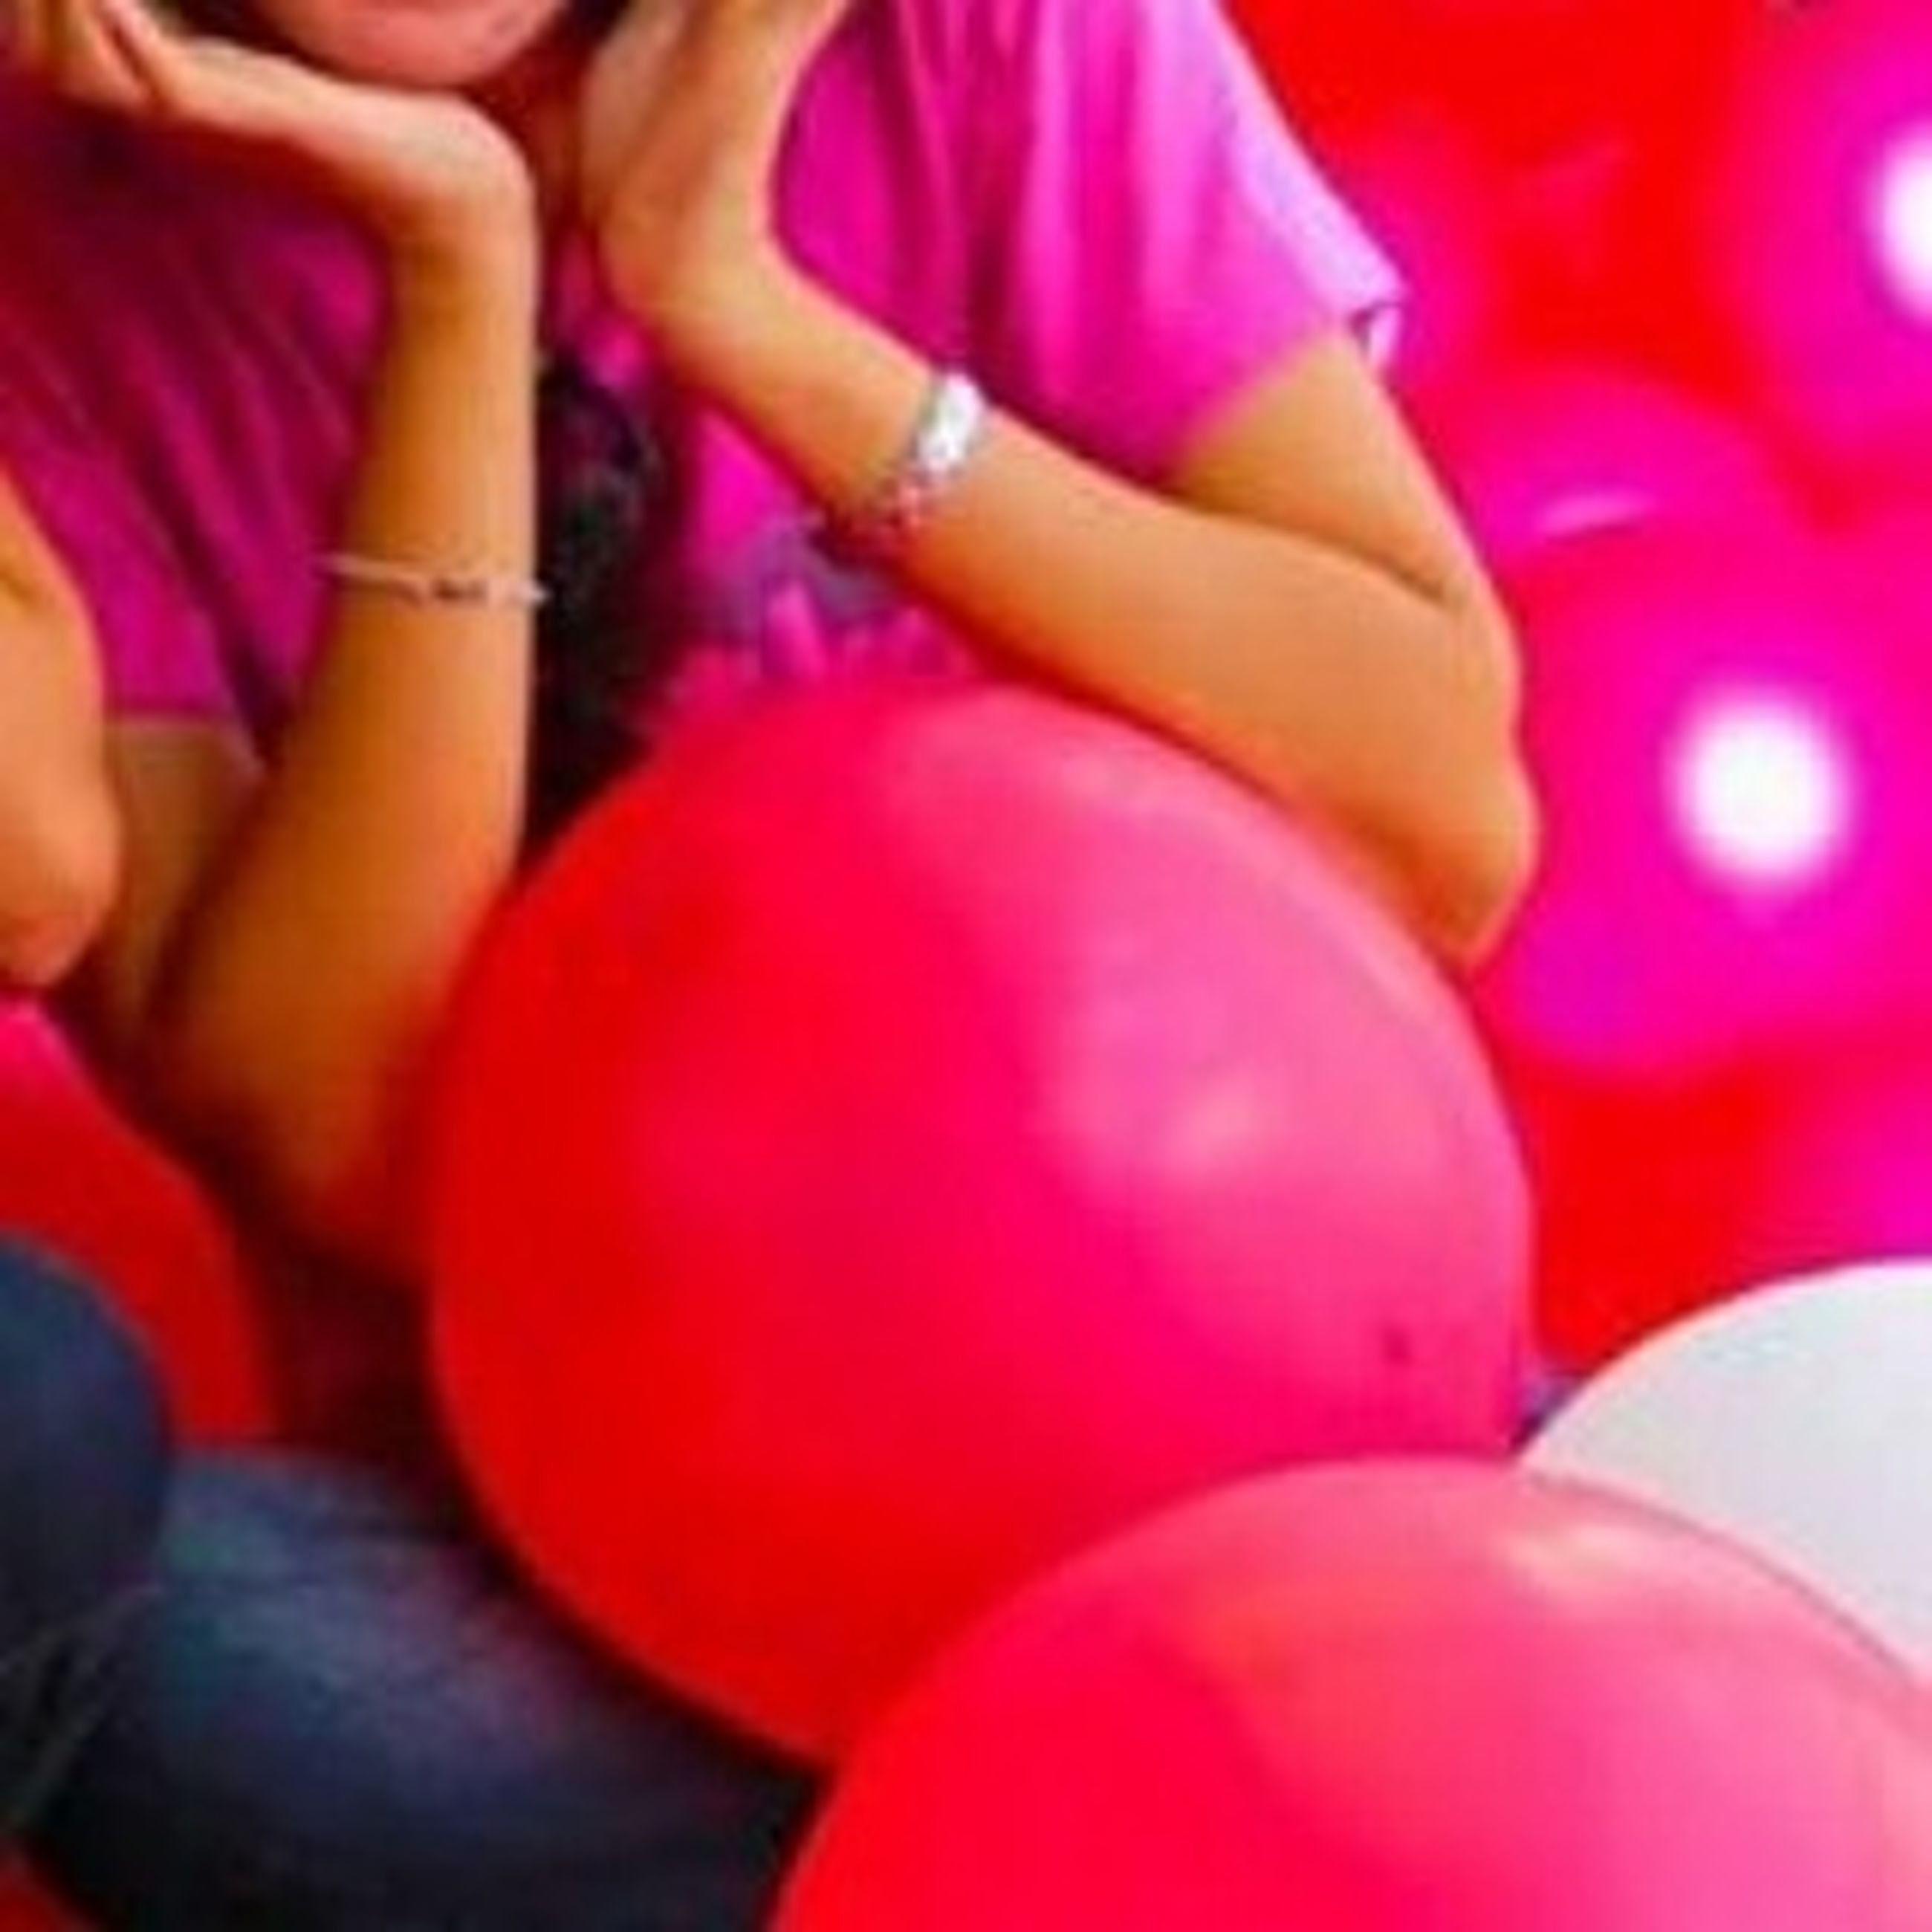 person, holding, lifestyles, red, leisure activity, part of, childhood, freshness, close-up, indoors, cropped, focus on foreground, celebration, midsection, human finger